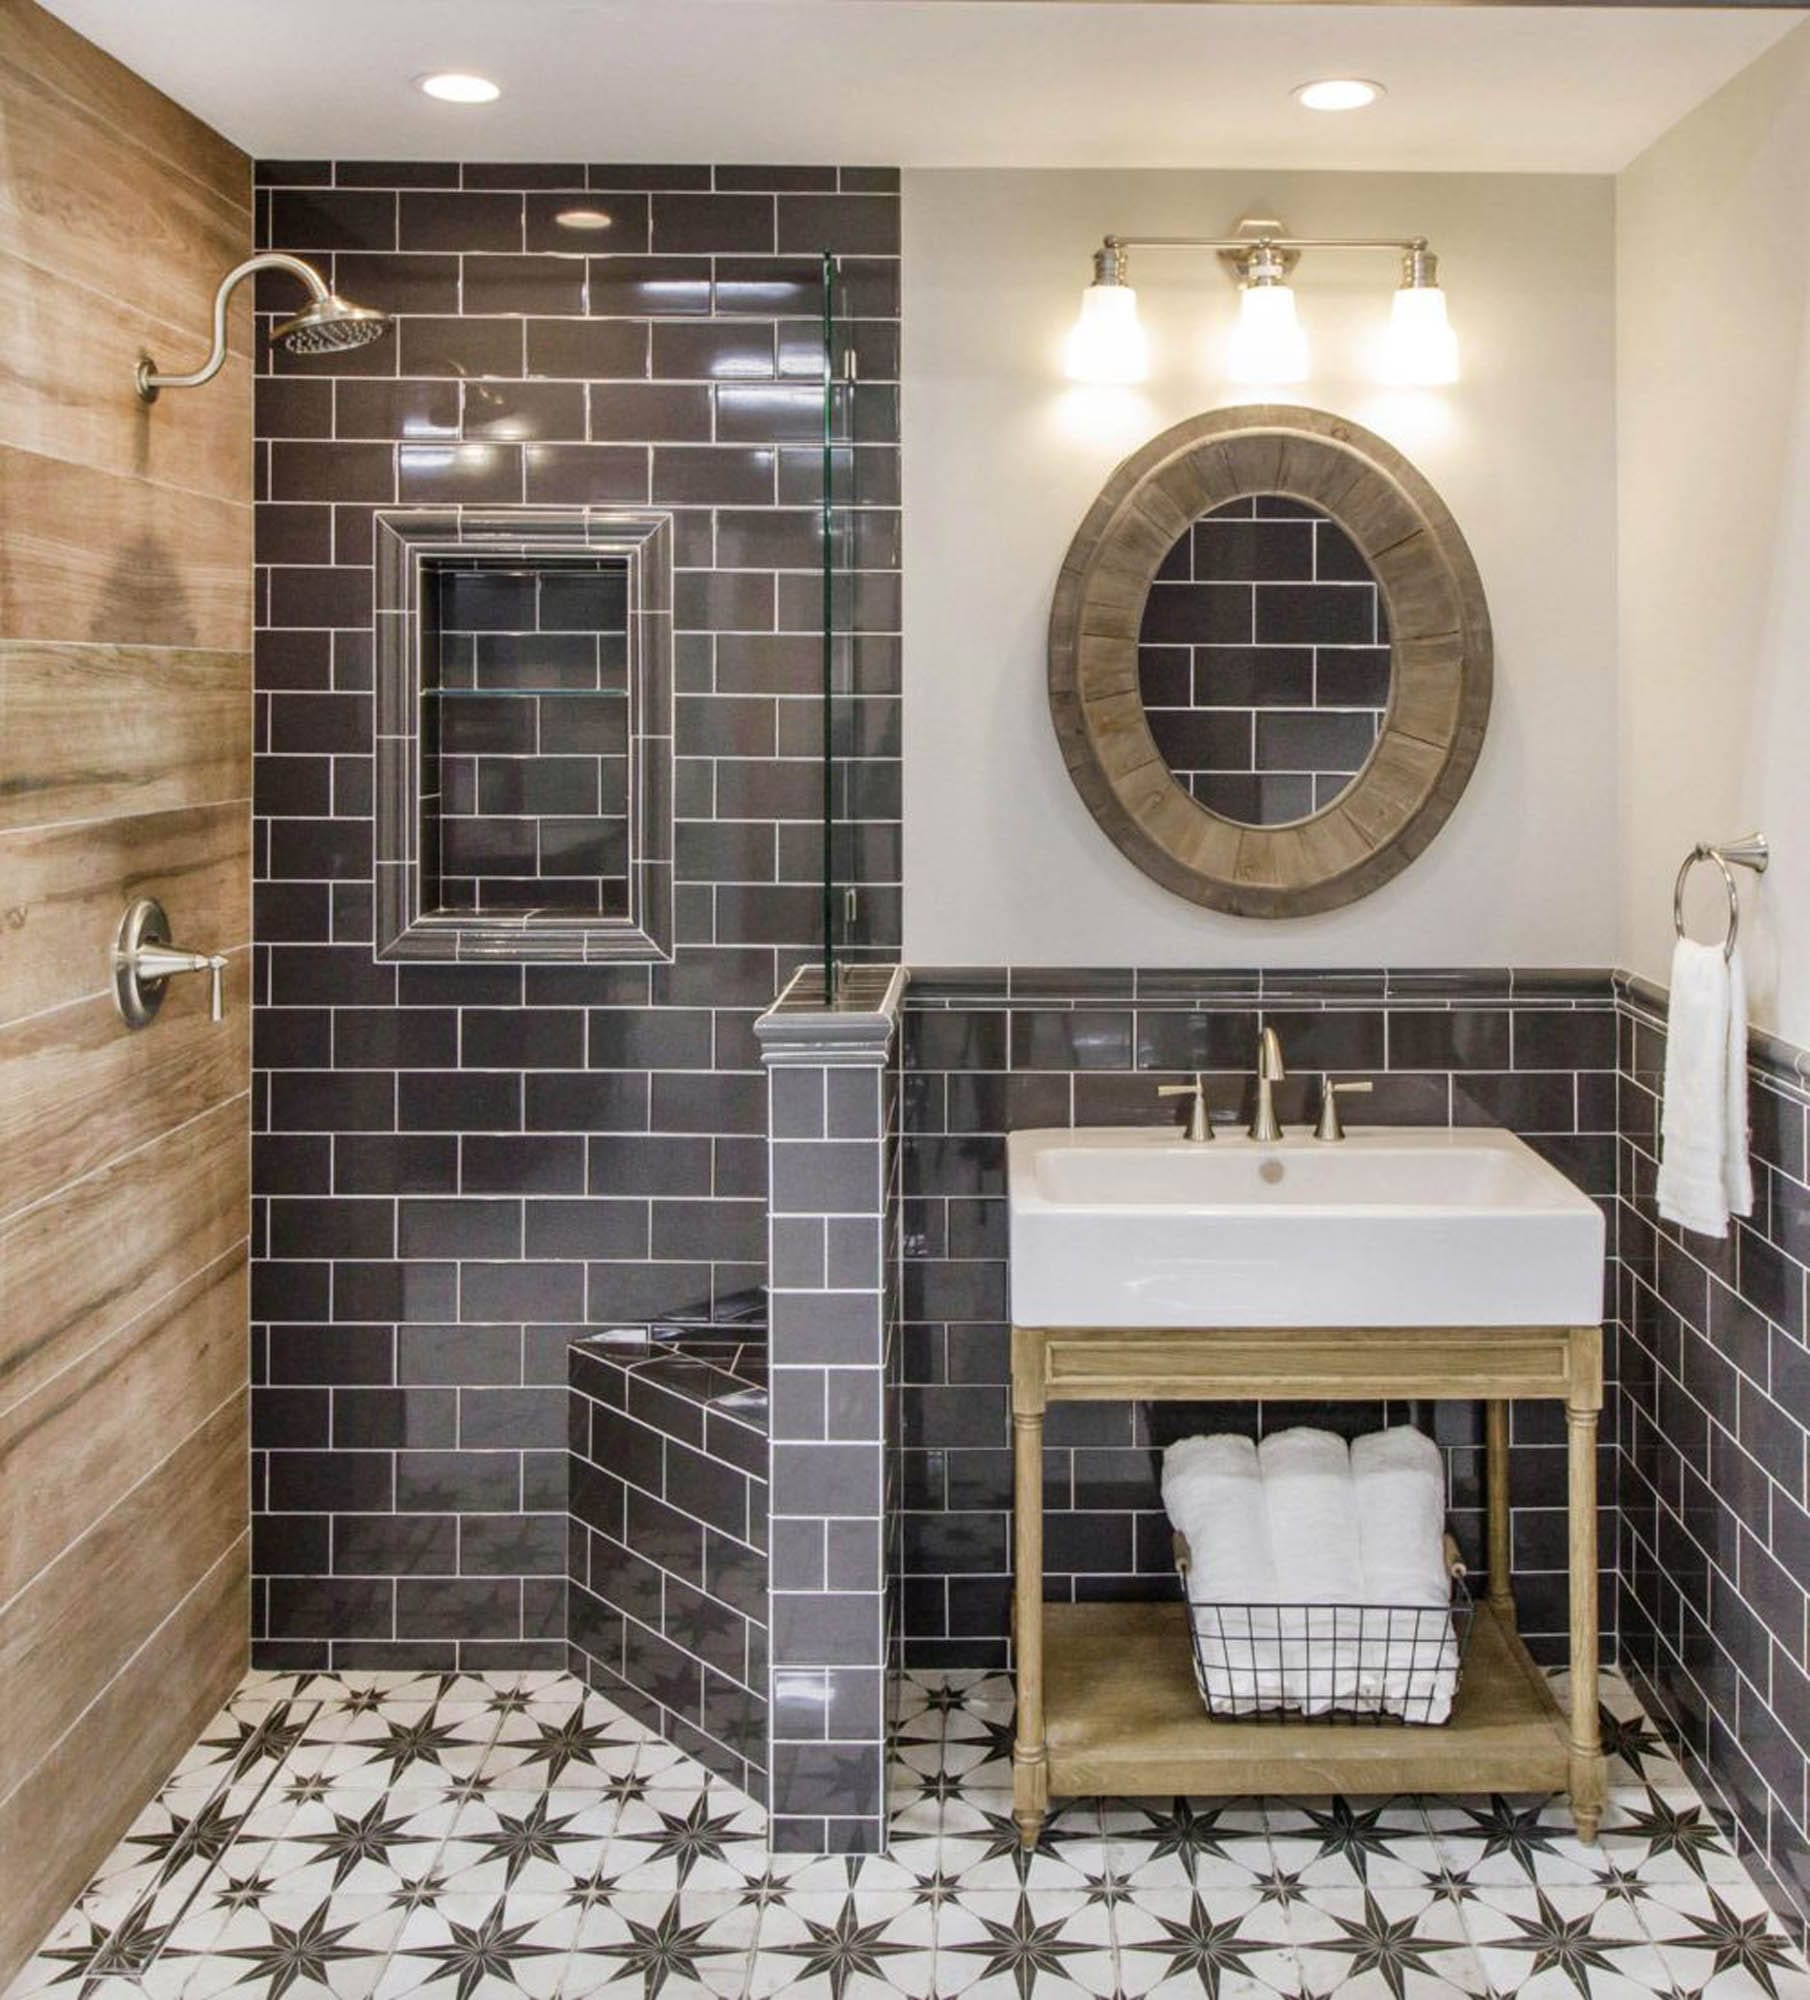 Wood Looking Tile Bathroom How To Achieve Modern Farmhouse Design With Tile The Tile Shop Blog